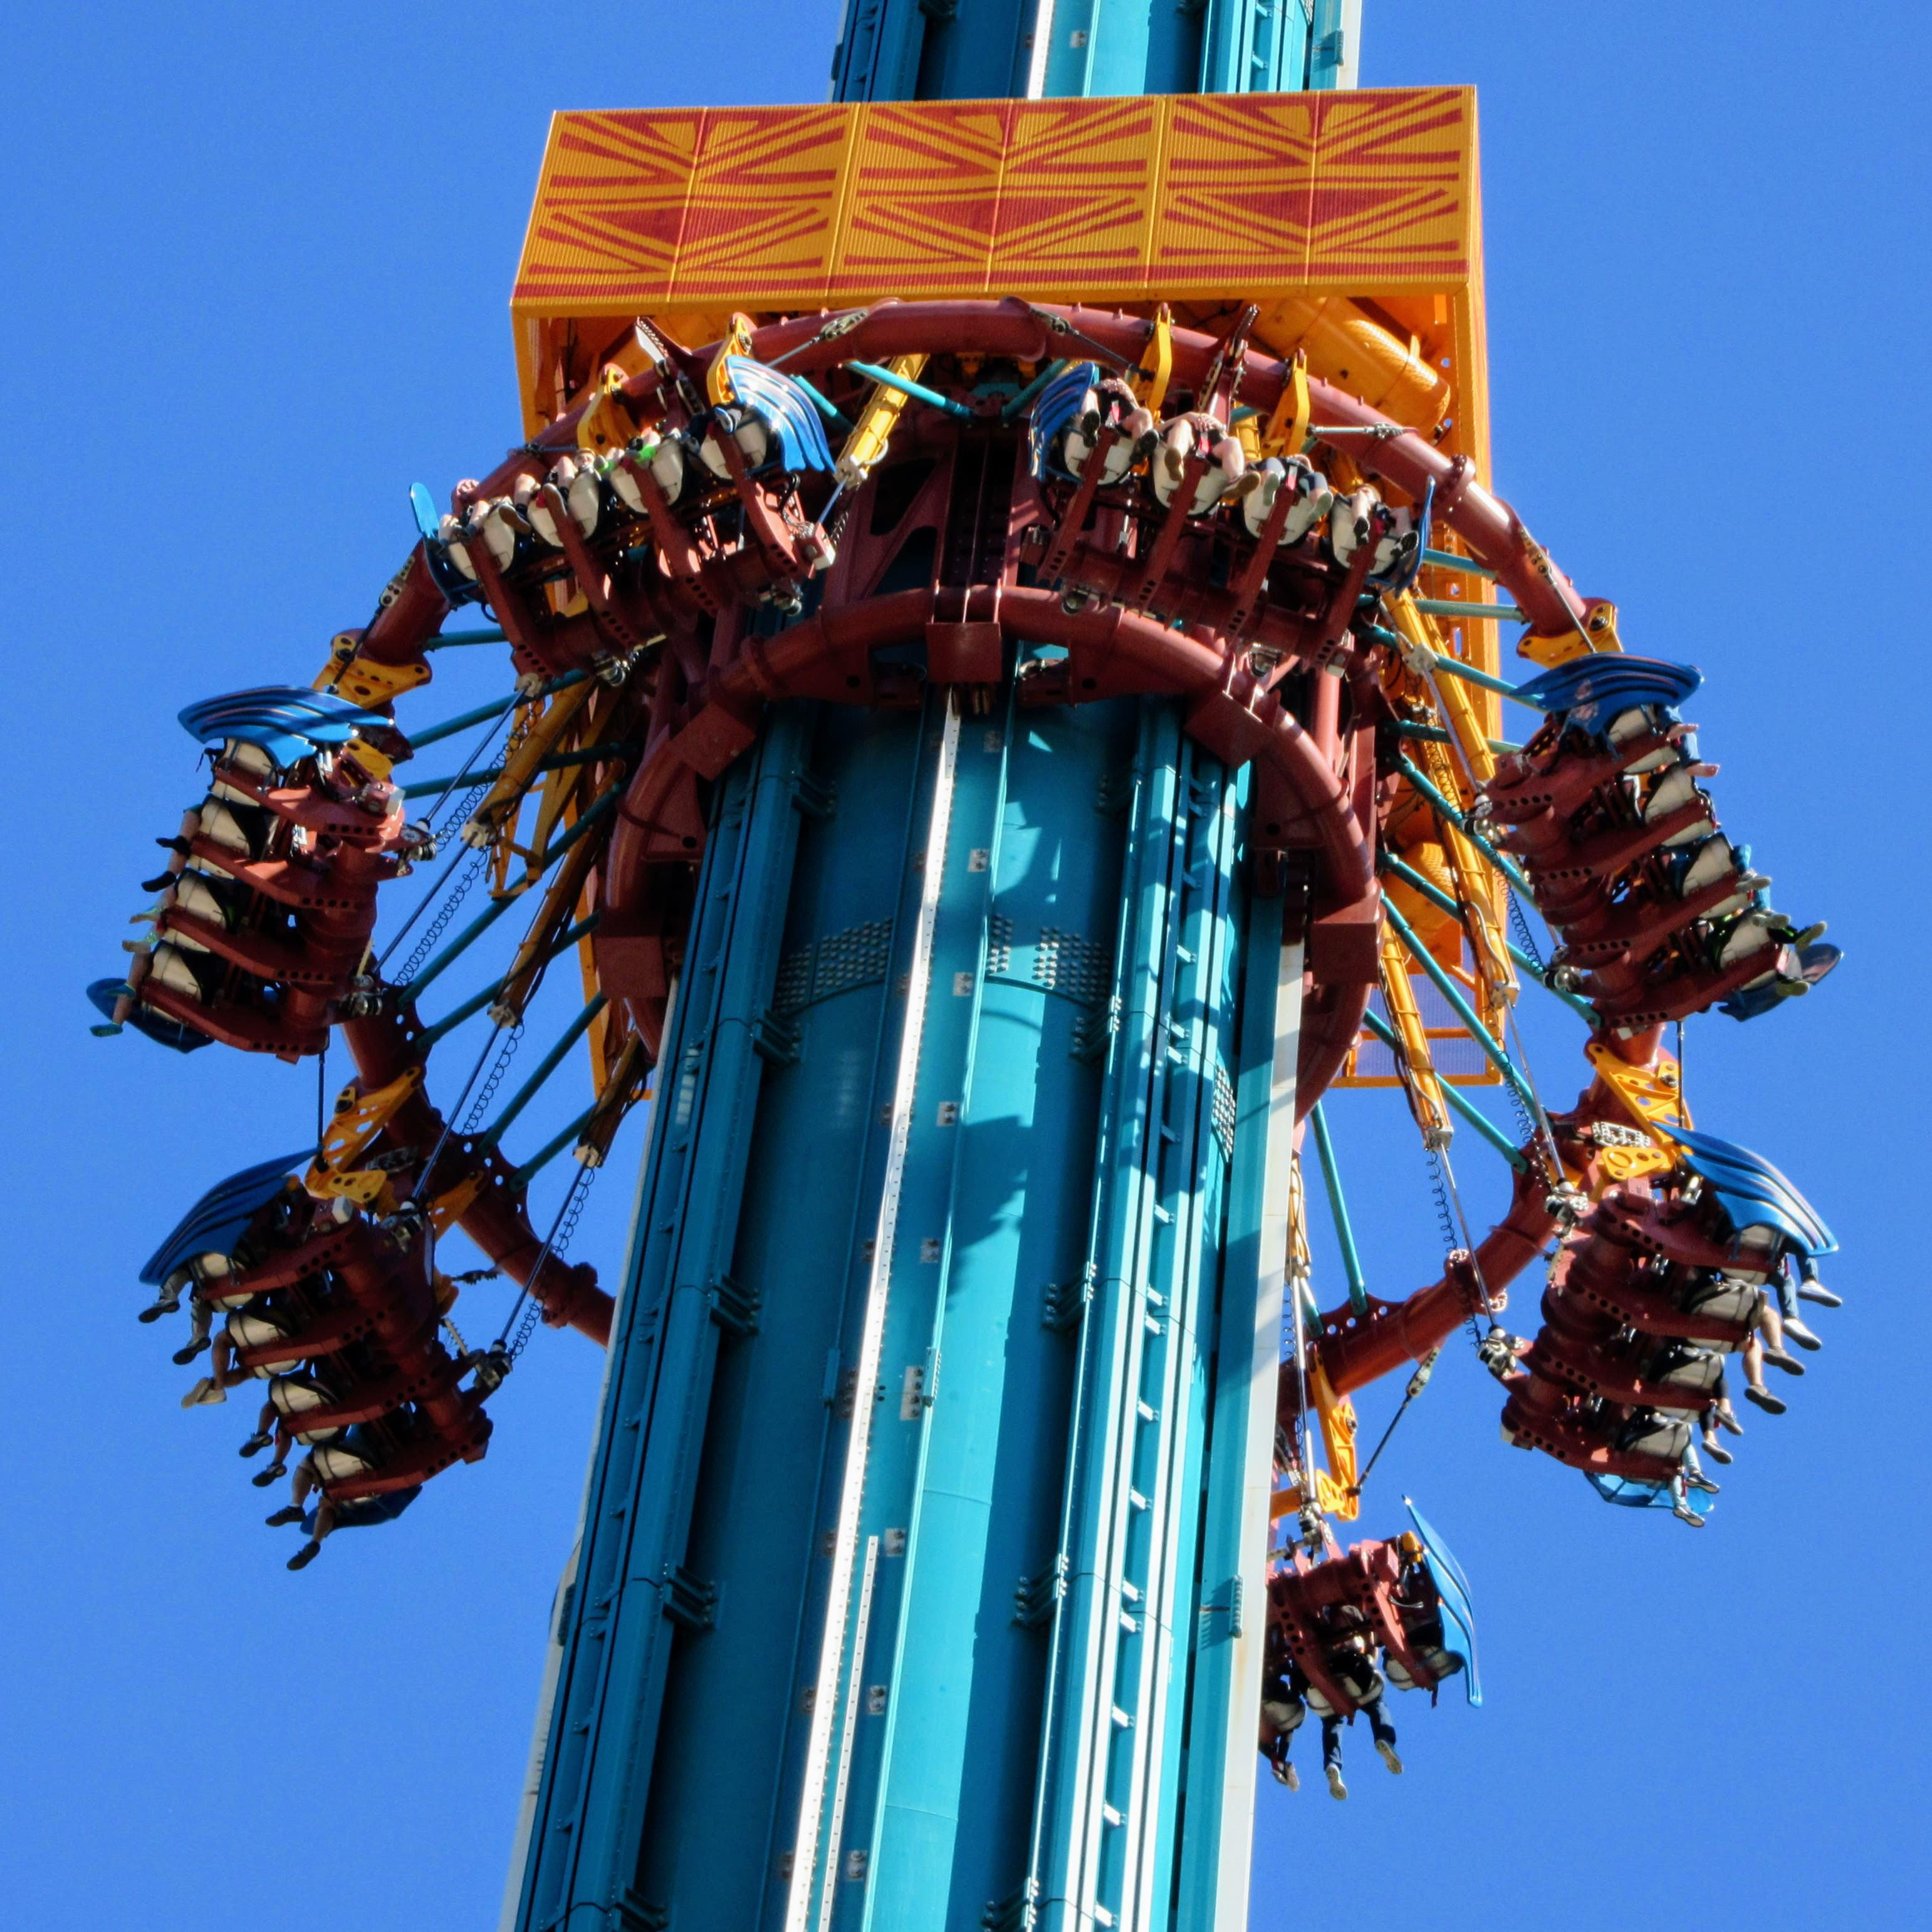 Visiting busch gardens tampa bay a review tips my - Busch gardens rides height requirements ...